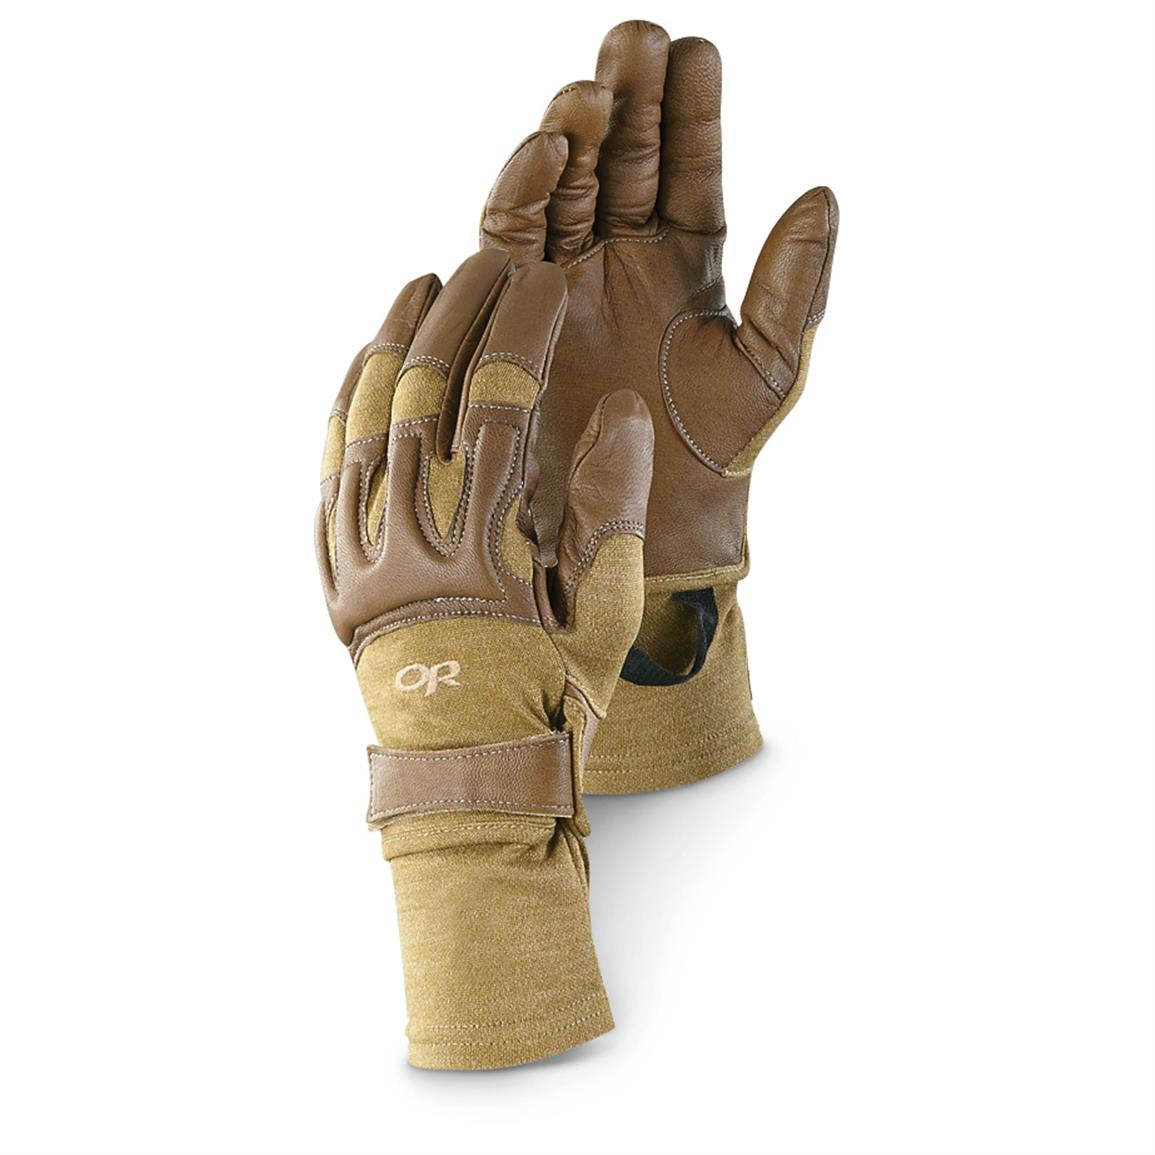 Outdoor Research Men's Rockfall Gloves with Nomex, Coyote